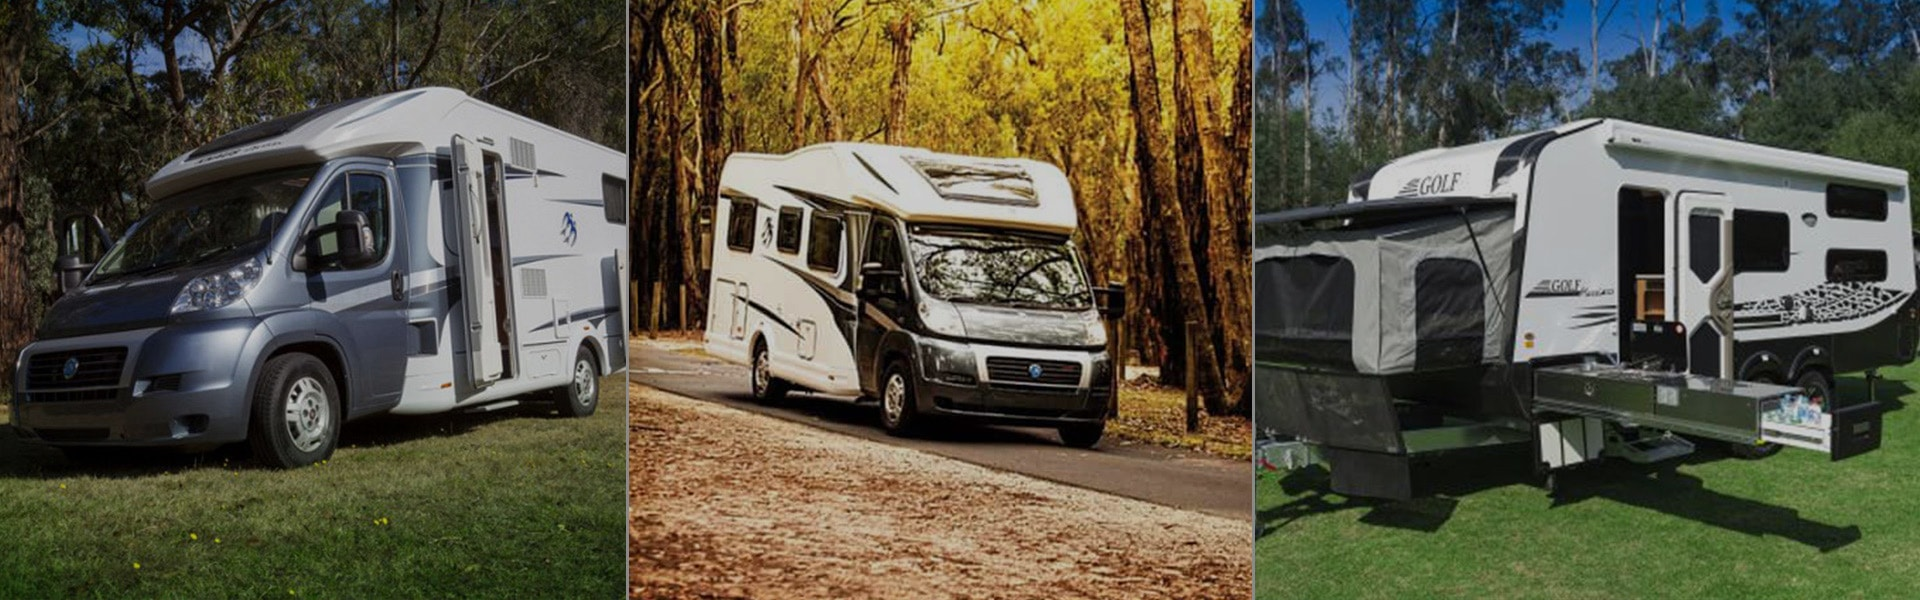 Complete RV Services